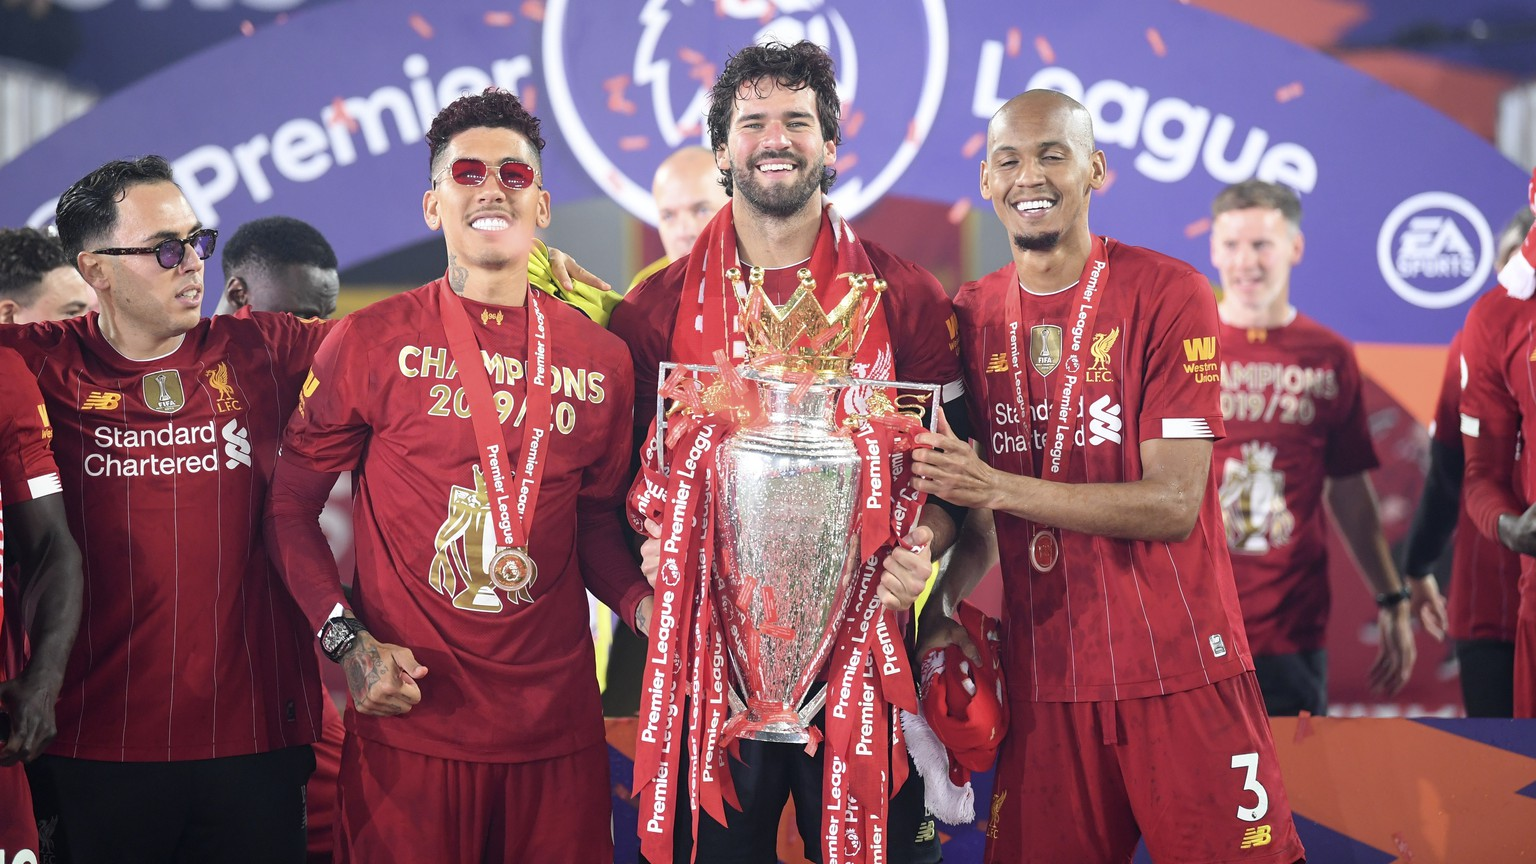 Liverpool's Fabinho, right, Liverpool's goalkeeper Alisson, center, and Roberto Firmino, all from Brazil, celebrate with the English Premier League trophy following the English Premier League soccer match between Liverpool and Chelsea at Anfield Stadium in Liverpool, England, Wednesday, July 22, 2020. Liverpool are champions of the EPL for the season 2019-2020. The trophy is presented at the teams last home game of the season. Liverpool won the match against Chelsea 5-3. (Laurence Griffiths, Pool via AP)